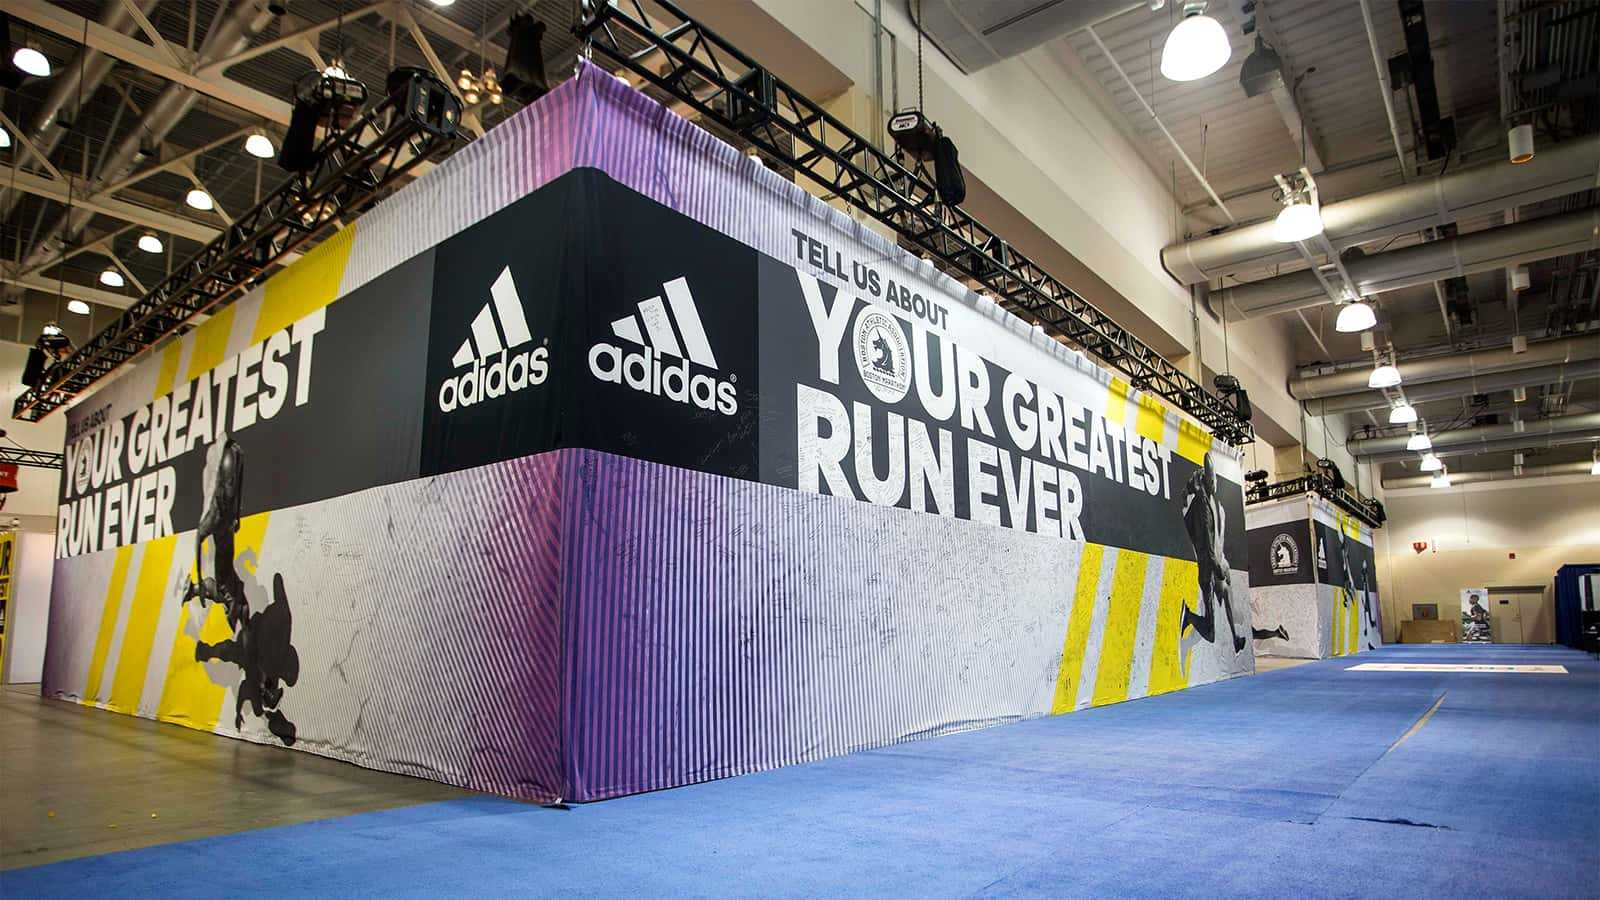 Your Greatest Run Ever wall graphic at adidas Boston Marathon store 2015 .